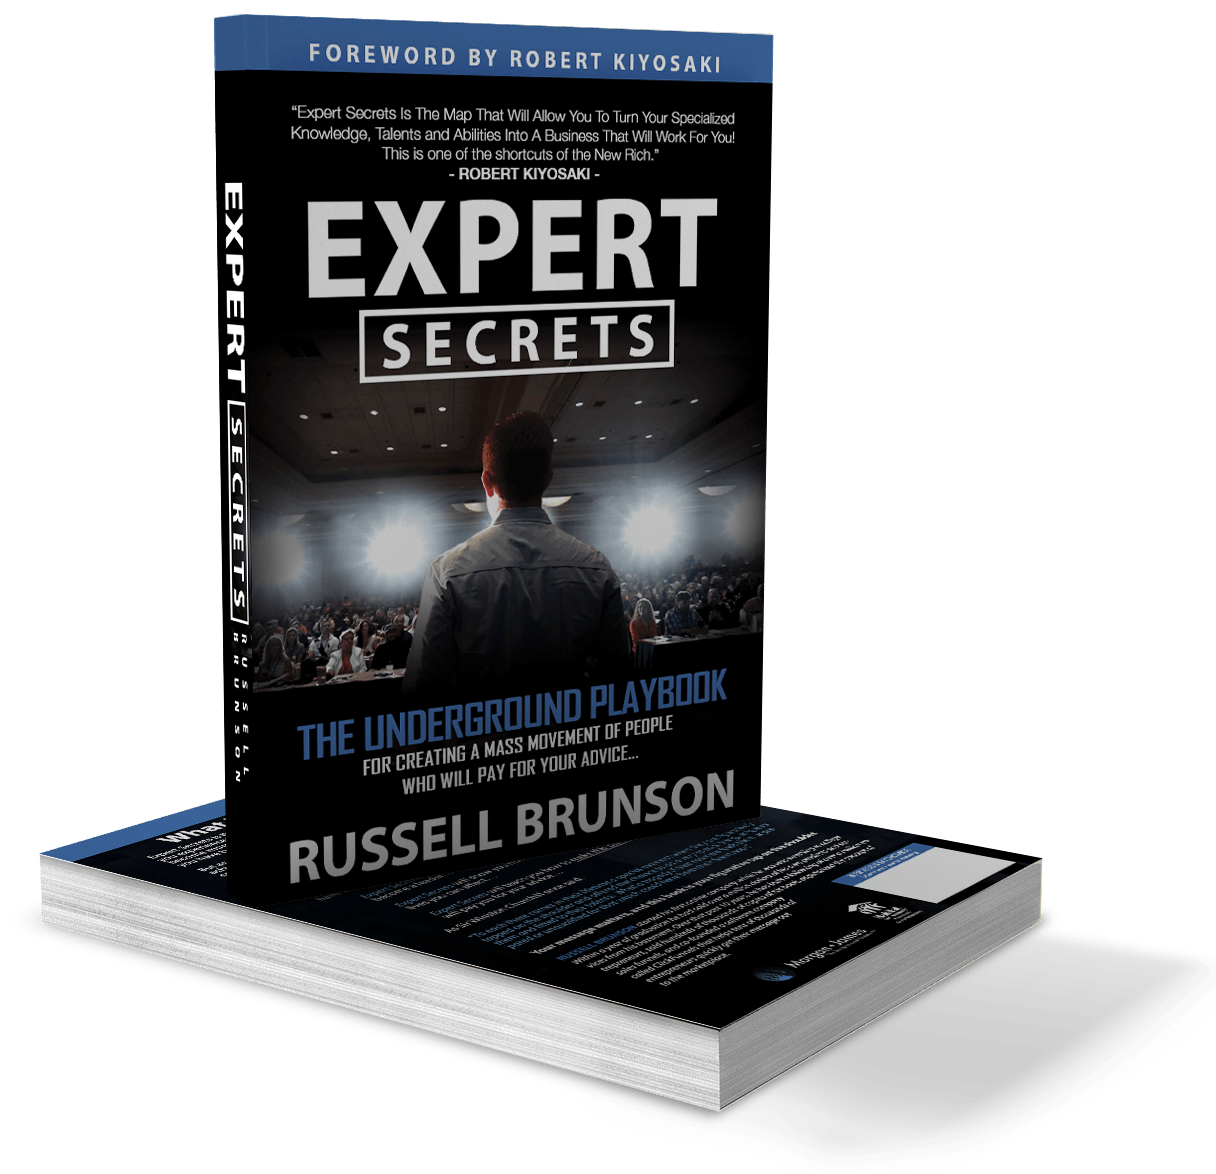 Expert secrets book review - summary